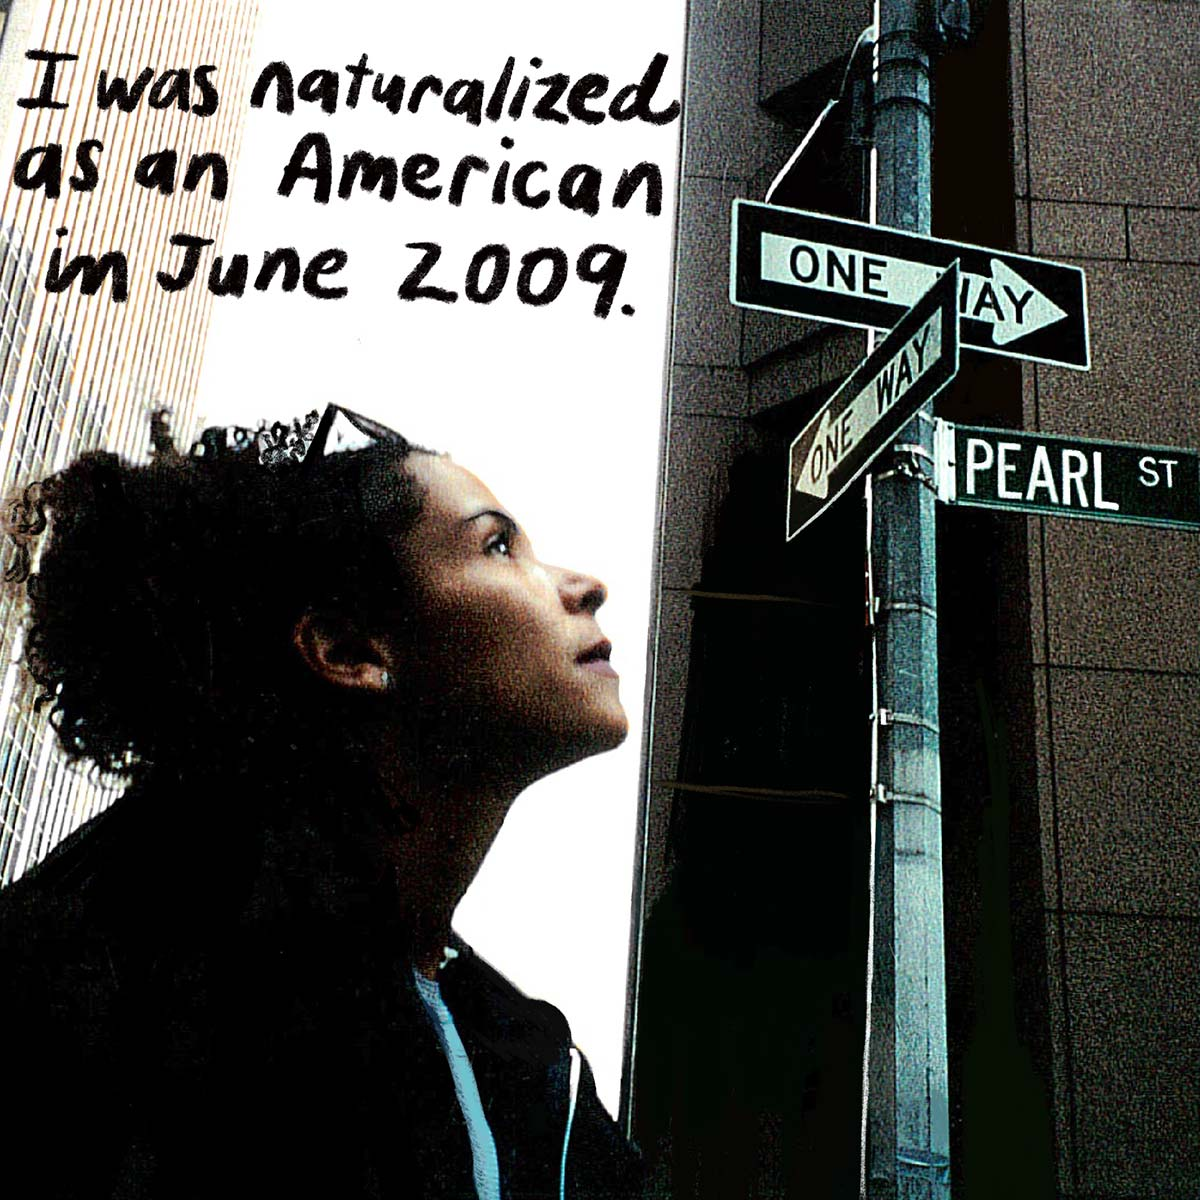 Mariane Pearl in New York City